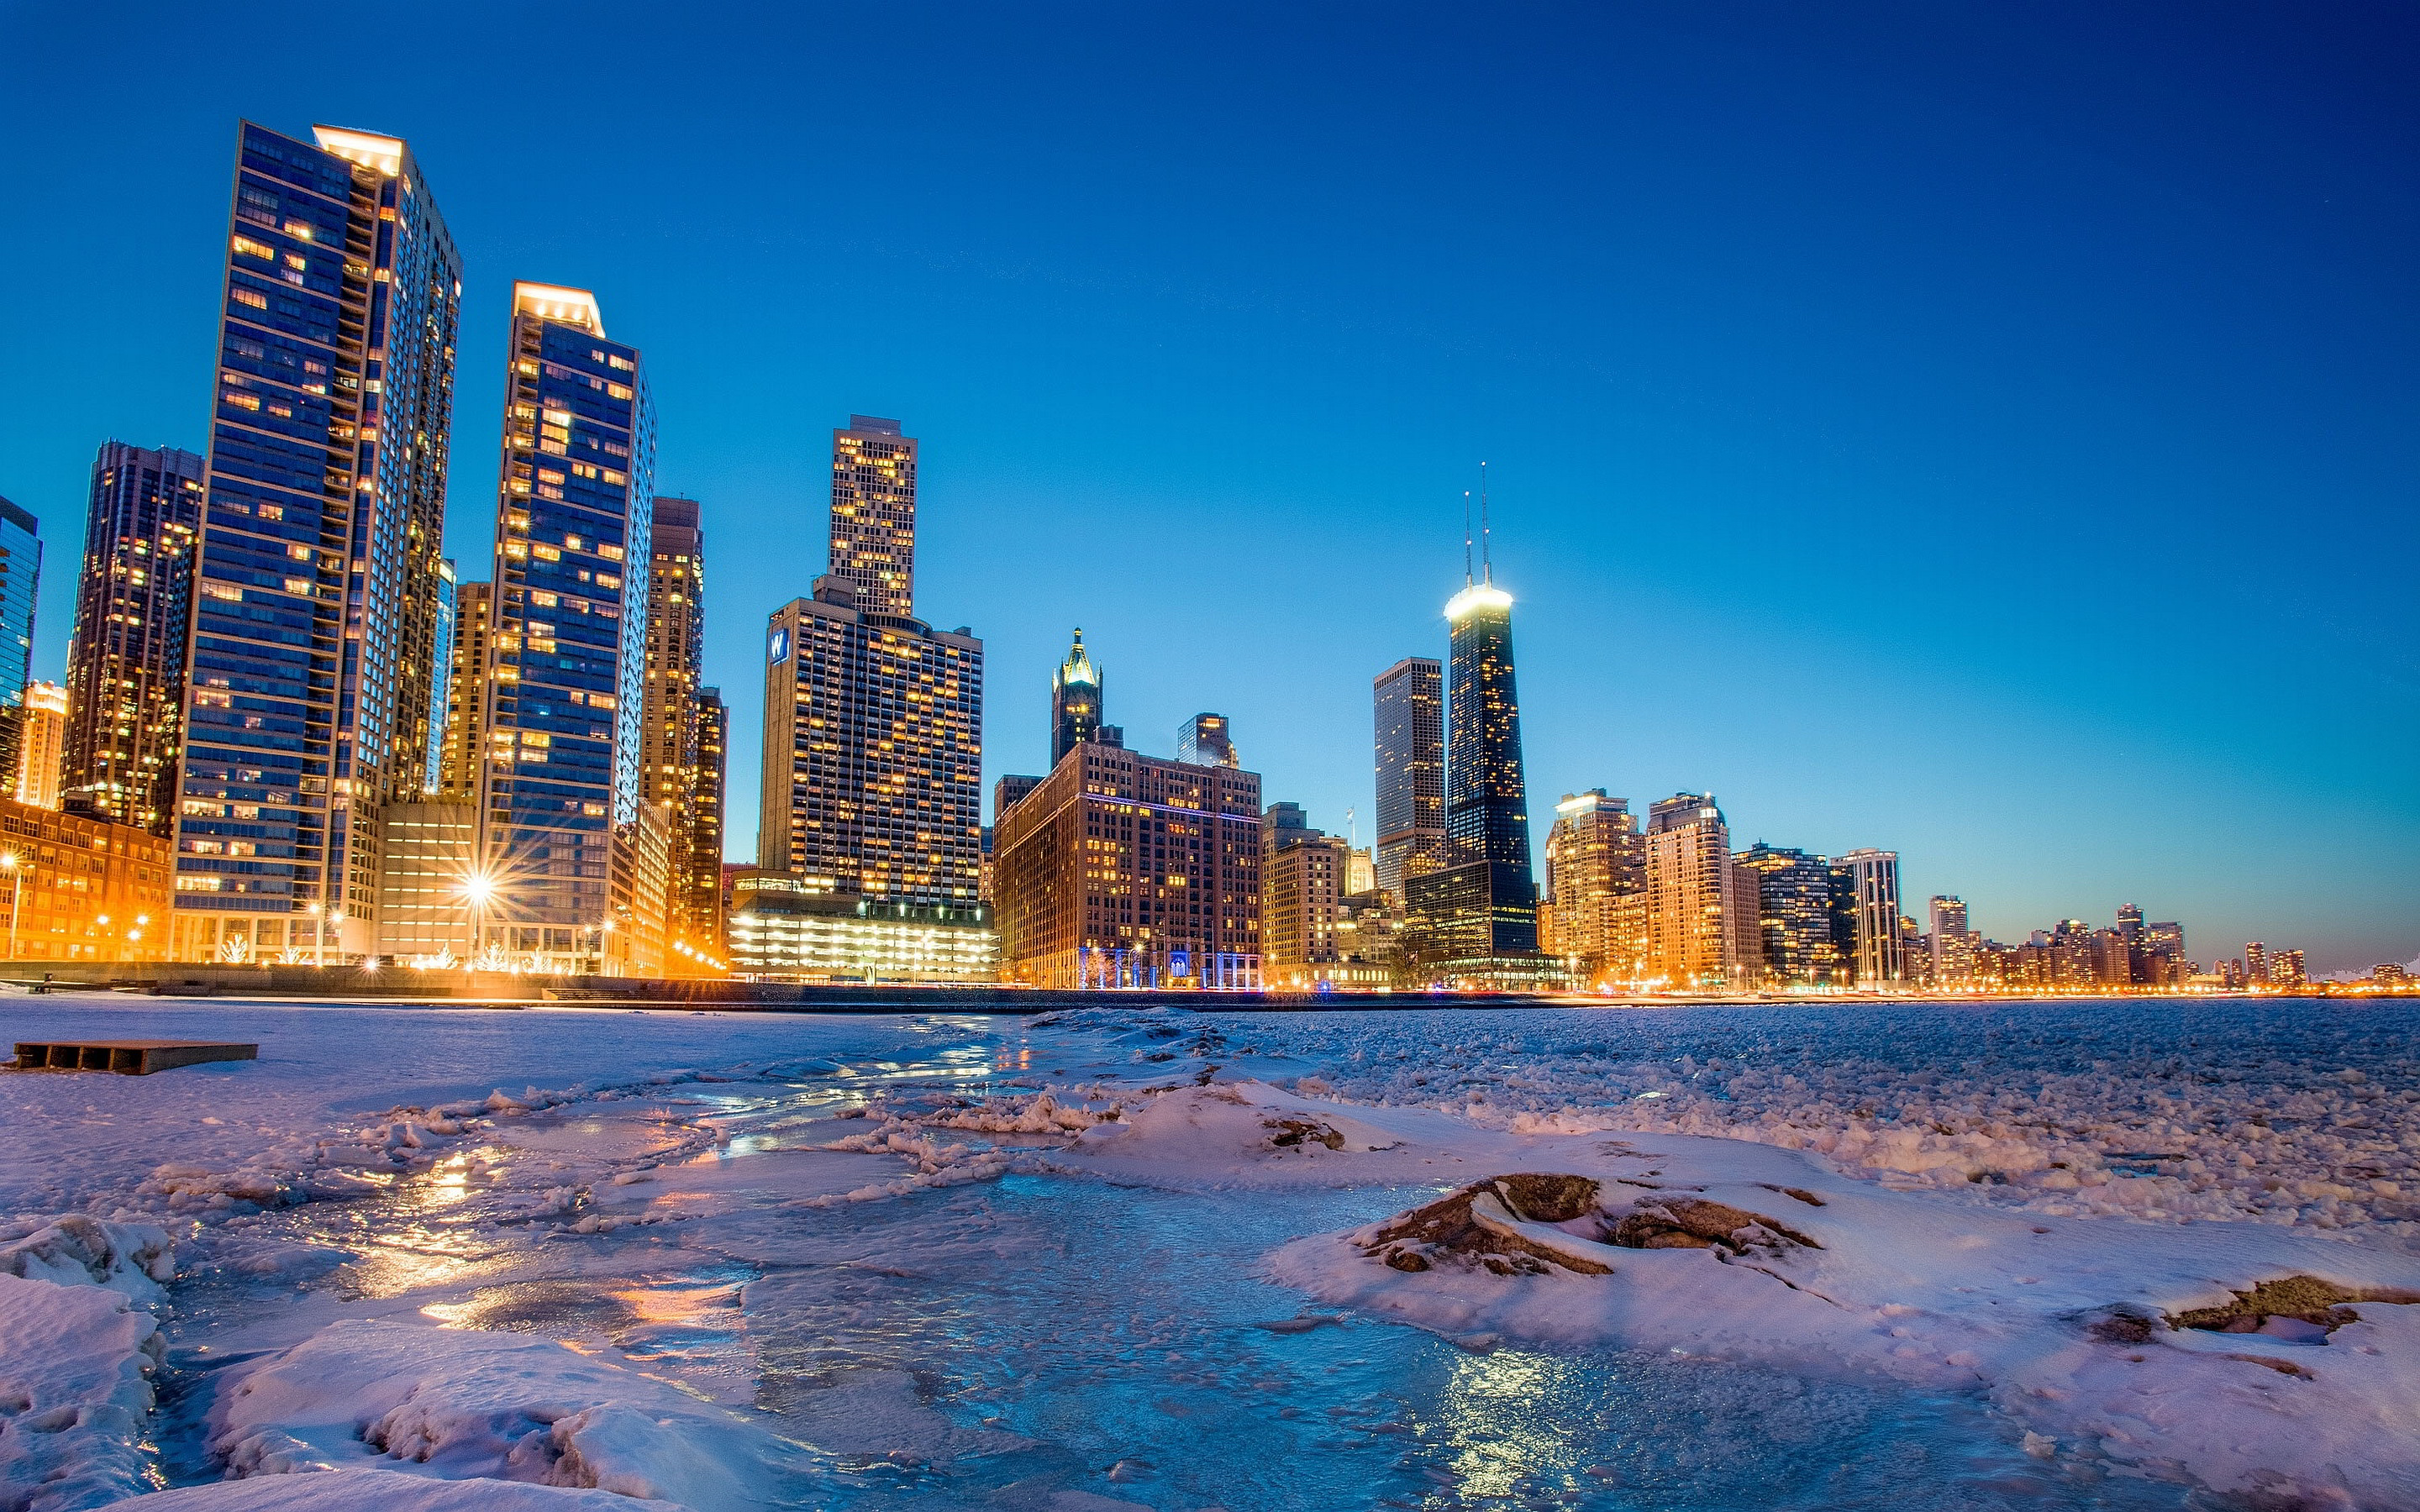 Chicago Winter Wallpaper